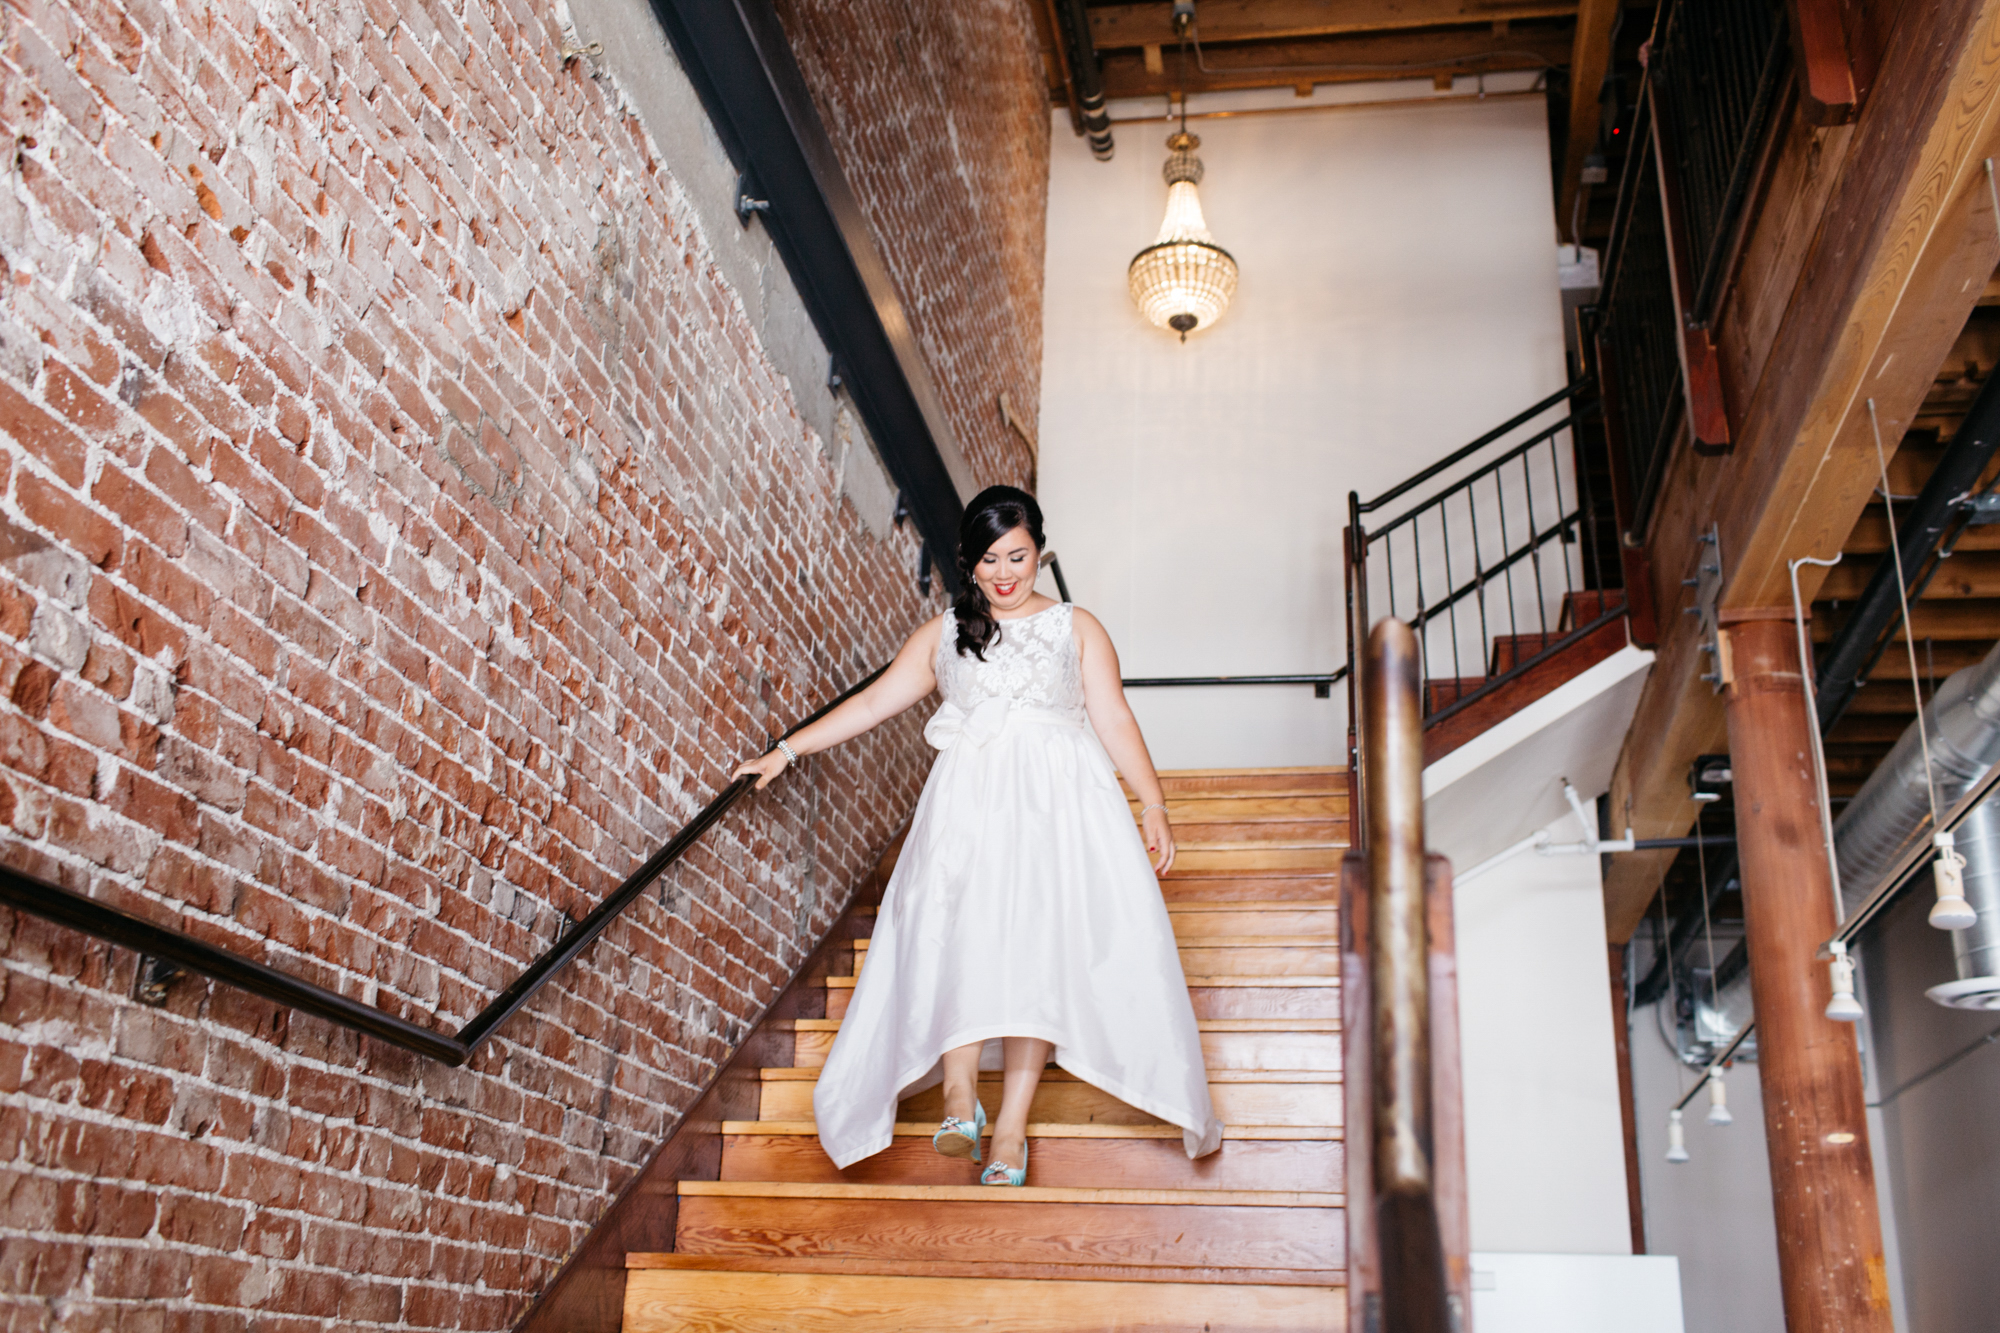 SamErica Studios - Los Angeles Wedding Photographer - The Loft on Pine-4.jpg